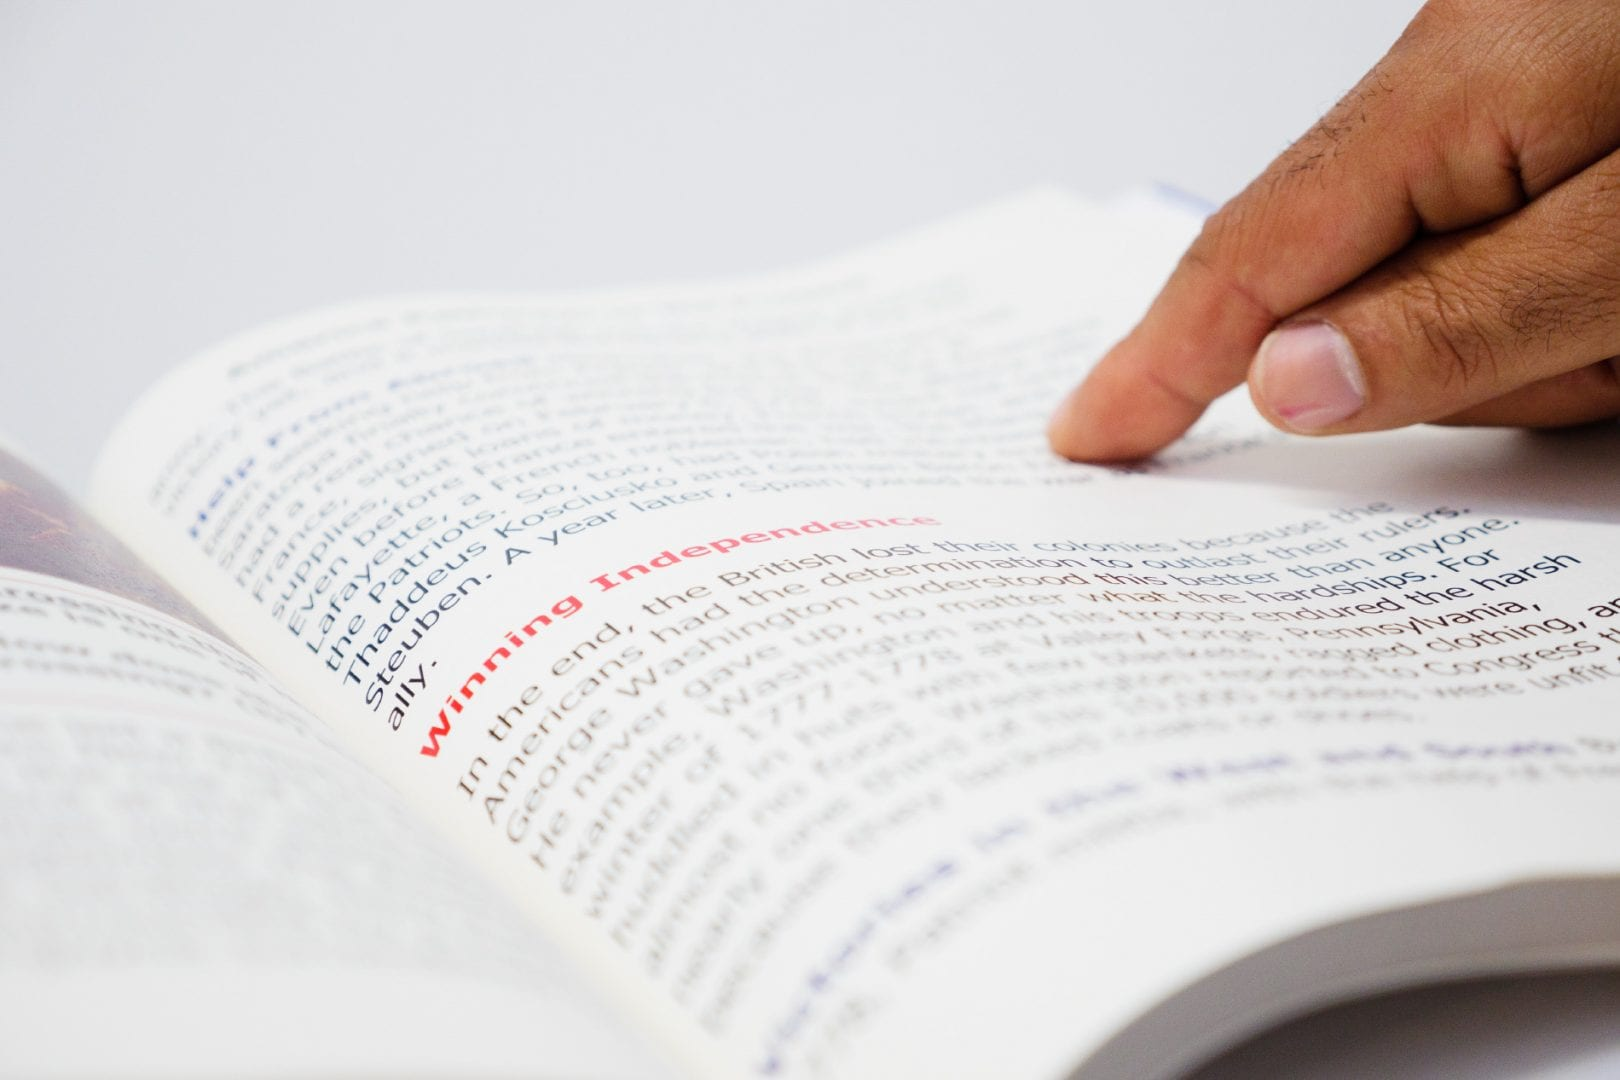 a hand tracking paragraphs on a book